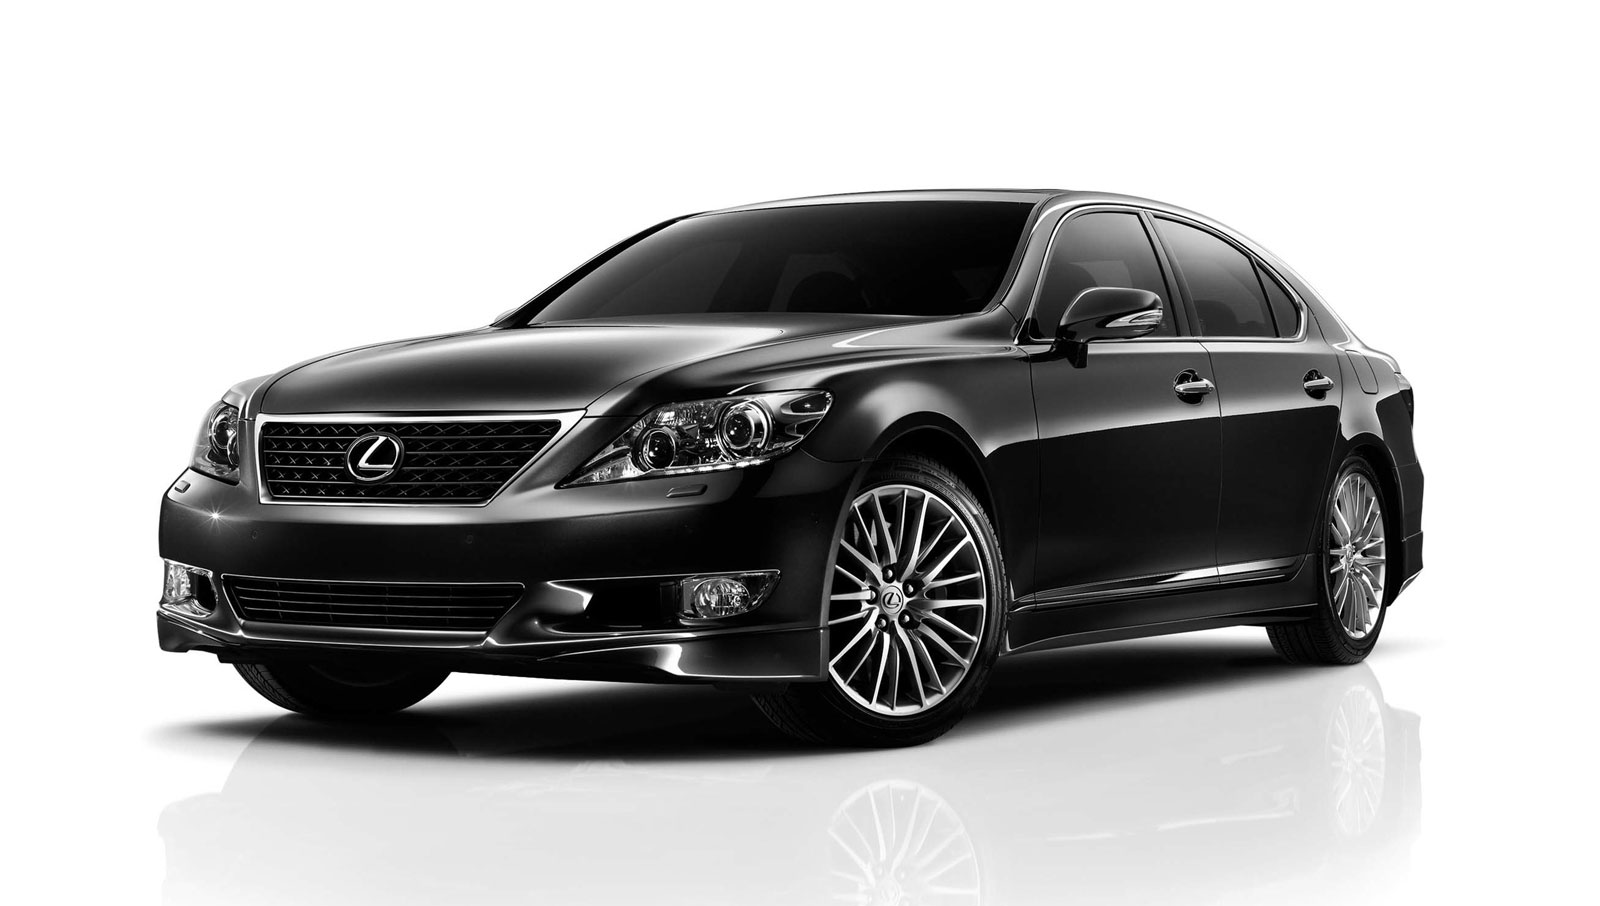 2012 lexus ls 460 sport limited edition extravaganzi. Black Bedroom Furniture Sets. Home Design Ideas